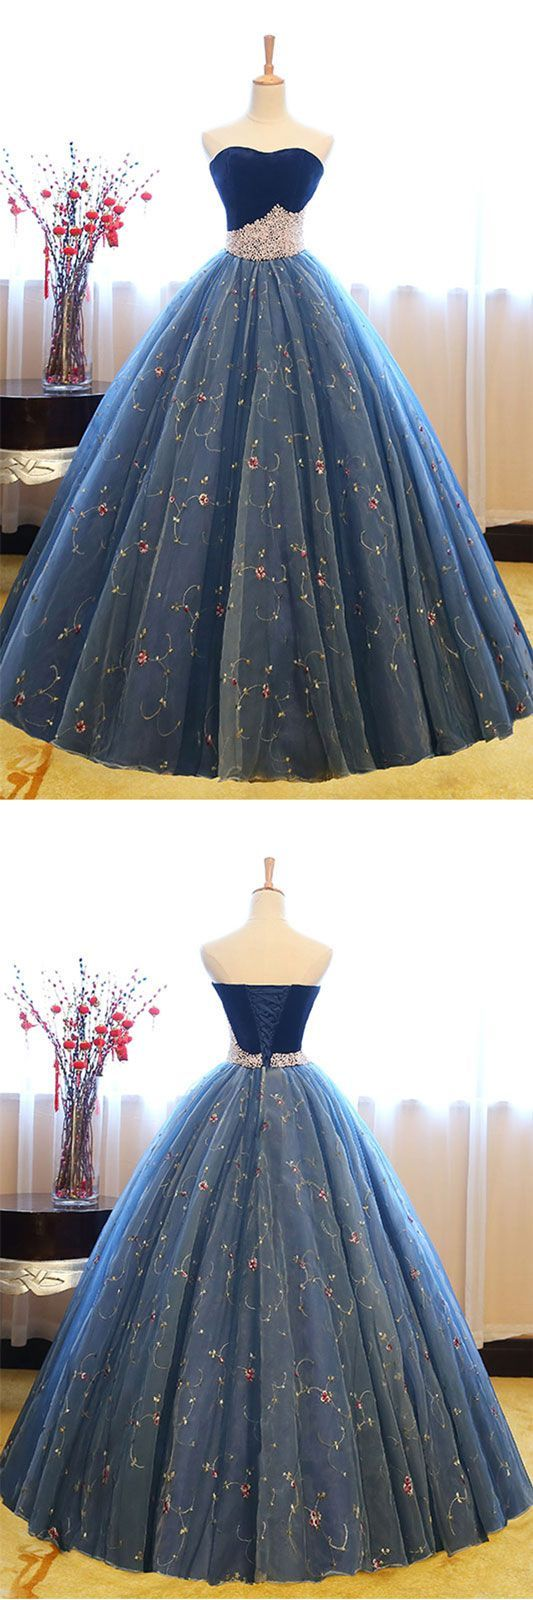 Blue sweetheart neck tulle long prom gown blue sweet dress